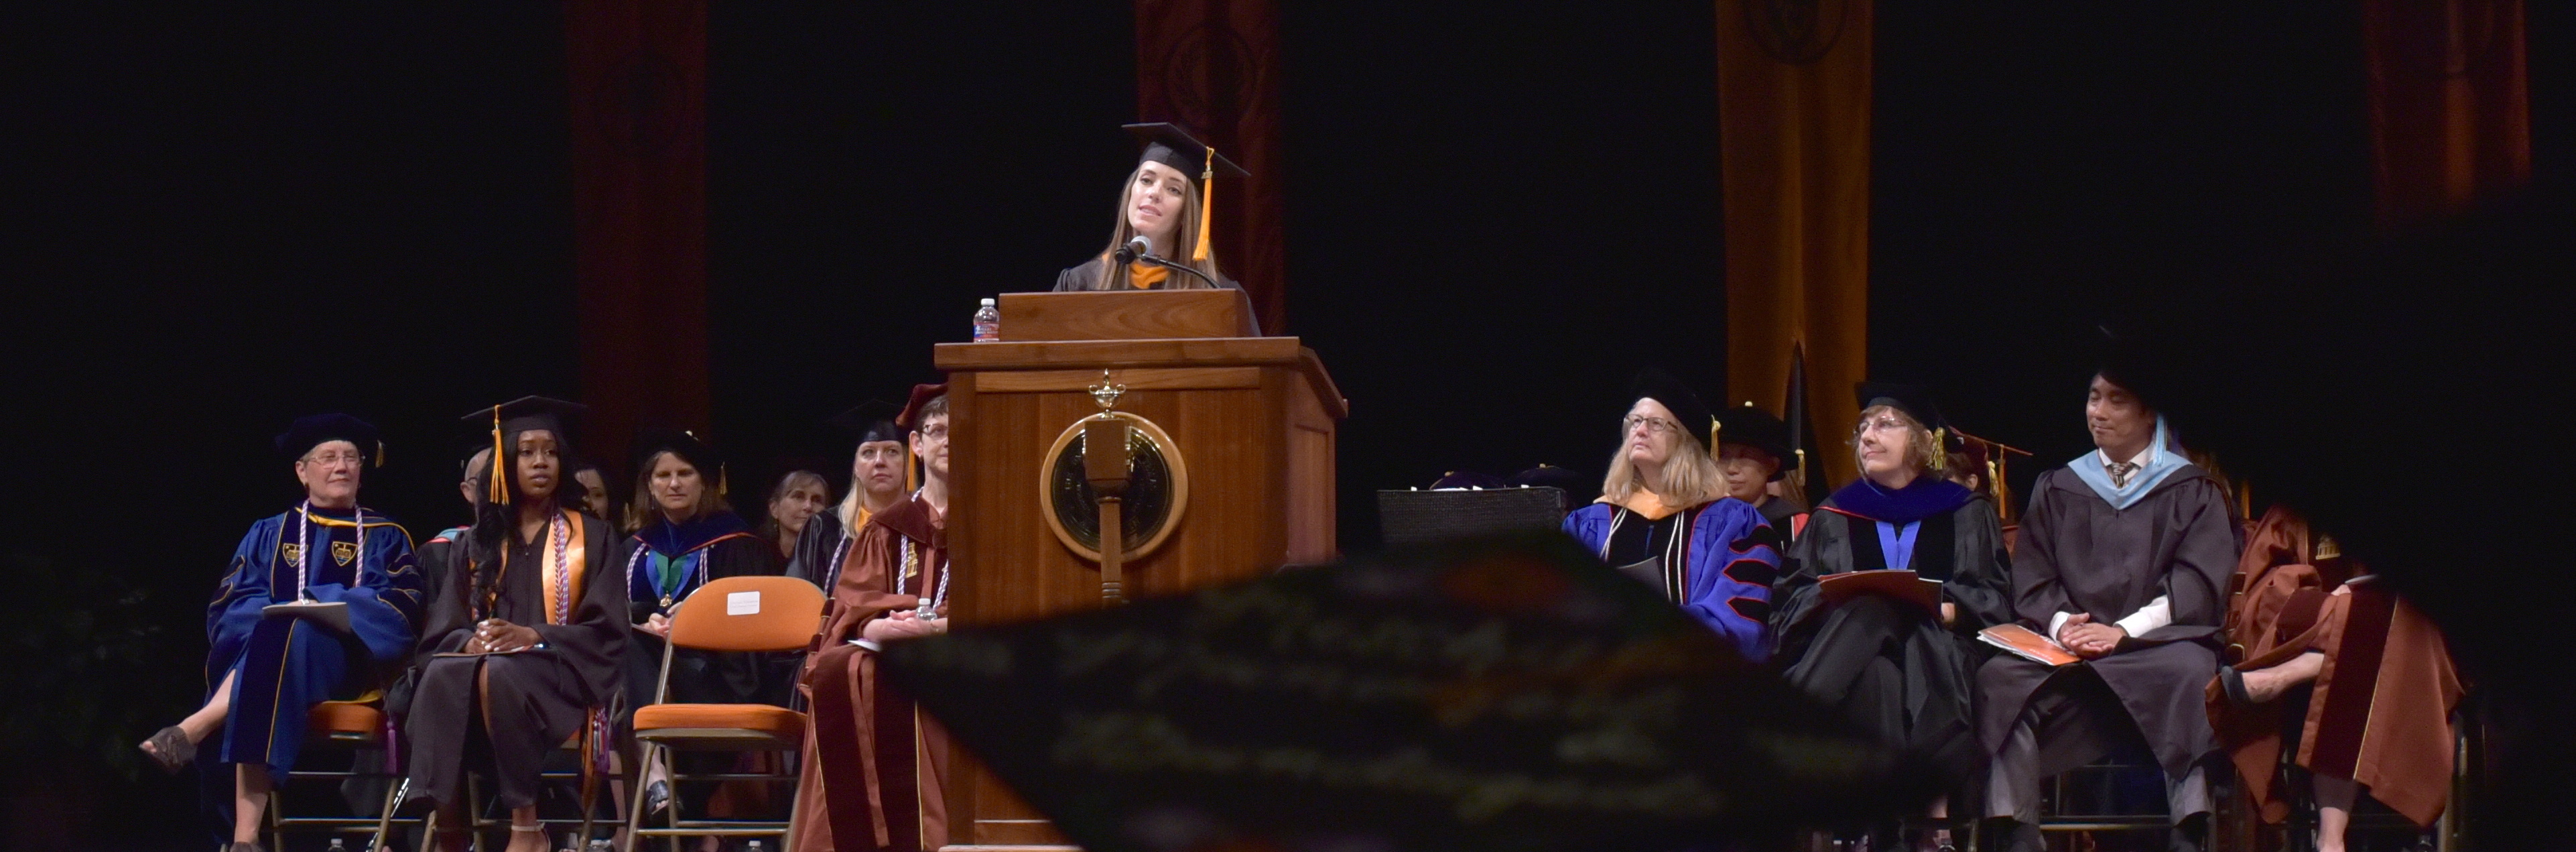 Graduate student speaking to graduating class